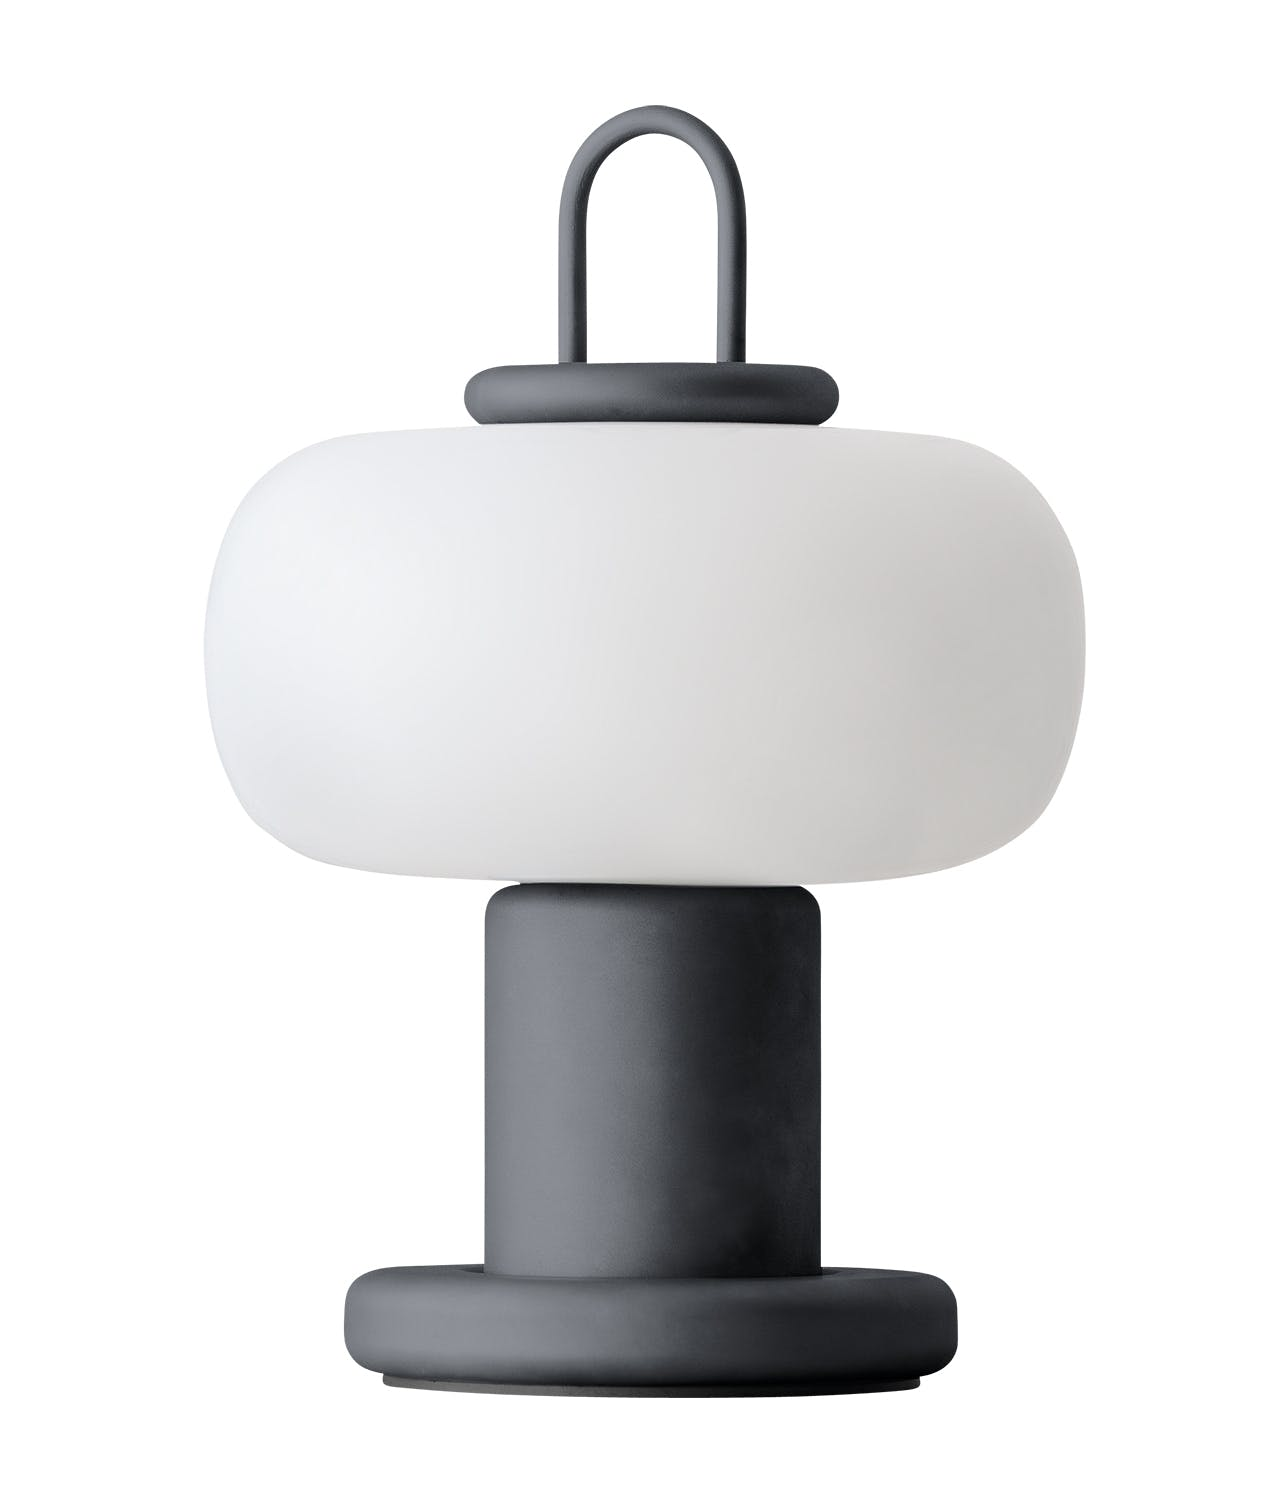 Astep transportabel lampe